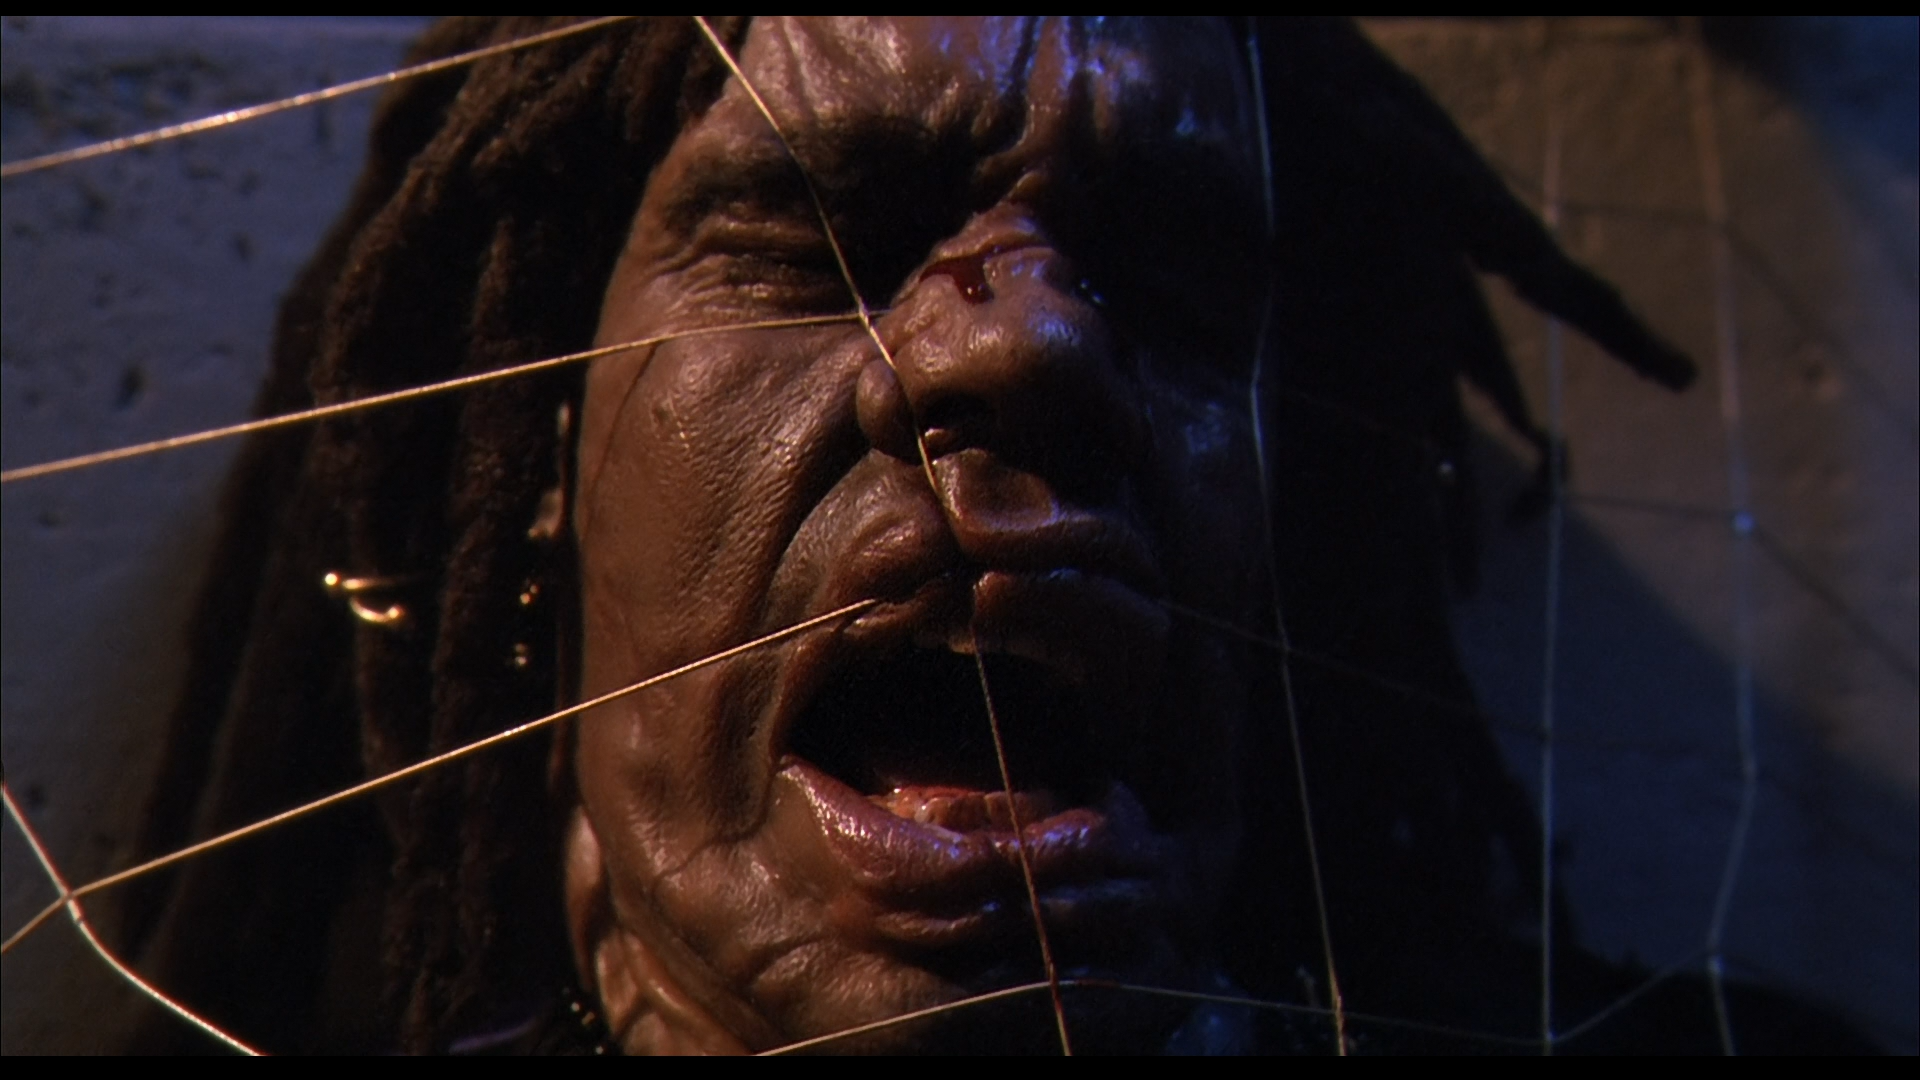 Хищник 2 / Predator 2 (1990) BDRip 1080p | 60FPS